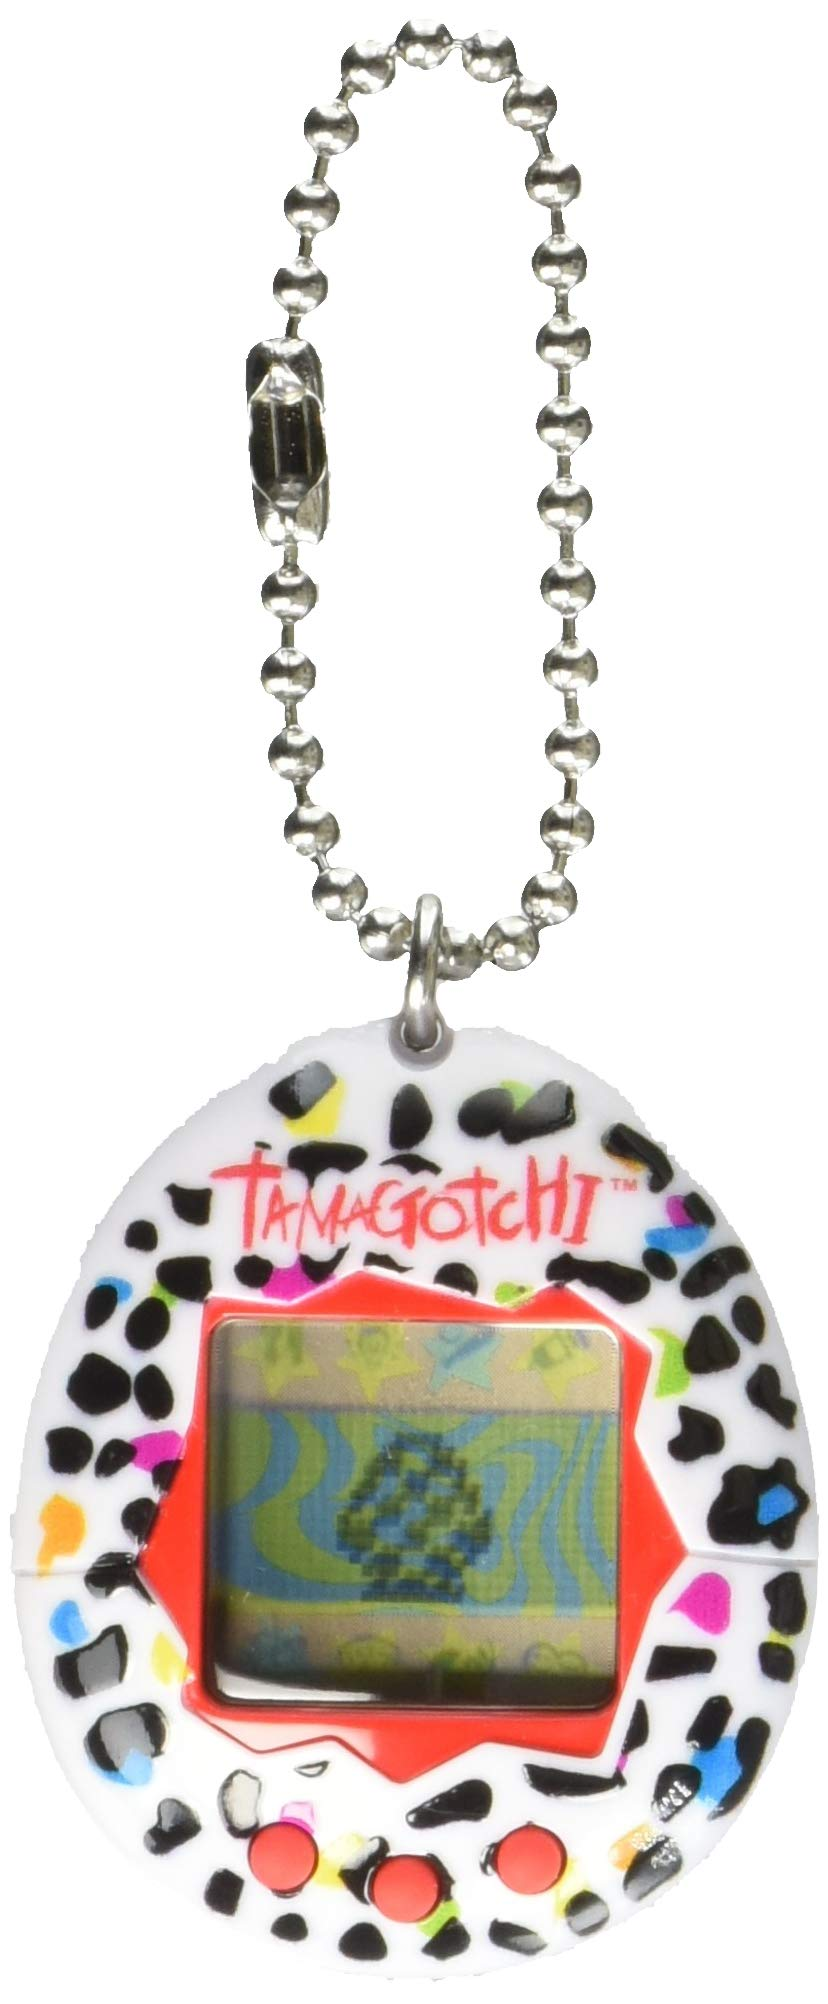 Tamagotchi Electronic Game, Leopard Print by Tamagotchi (Image #1)